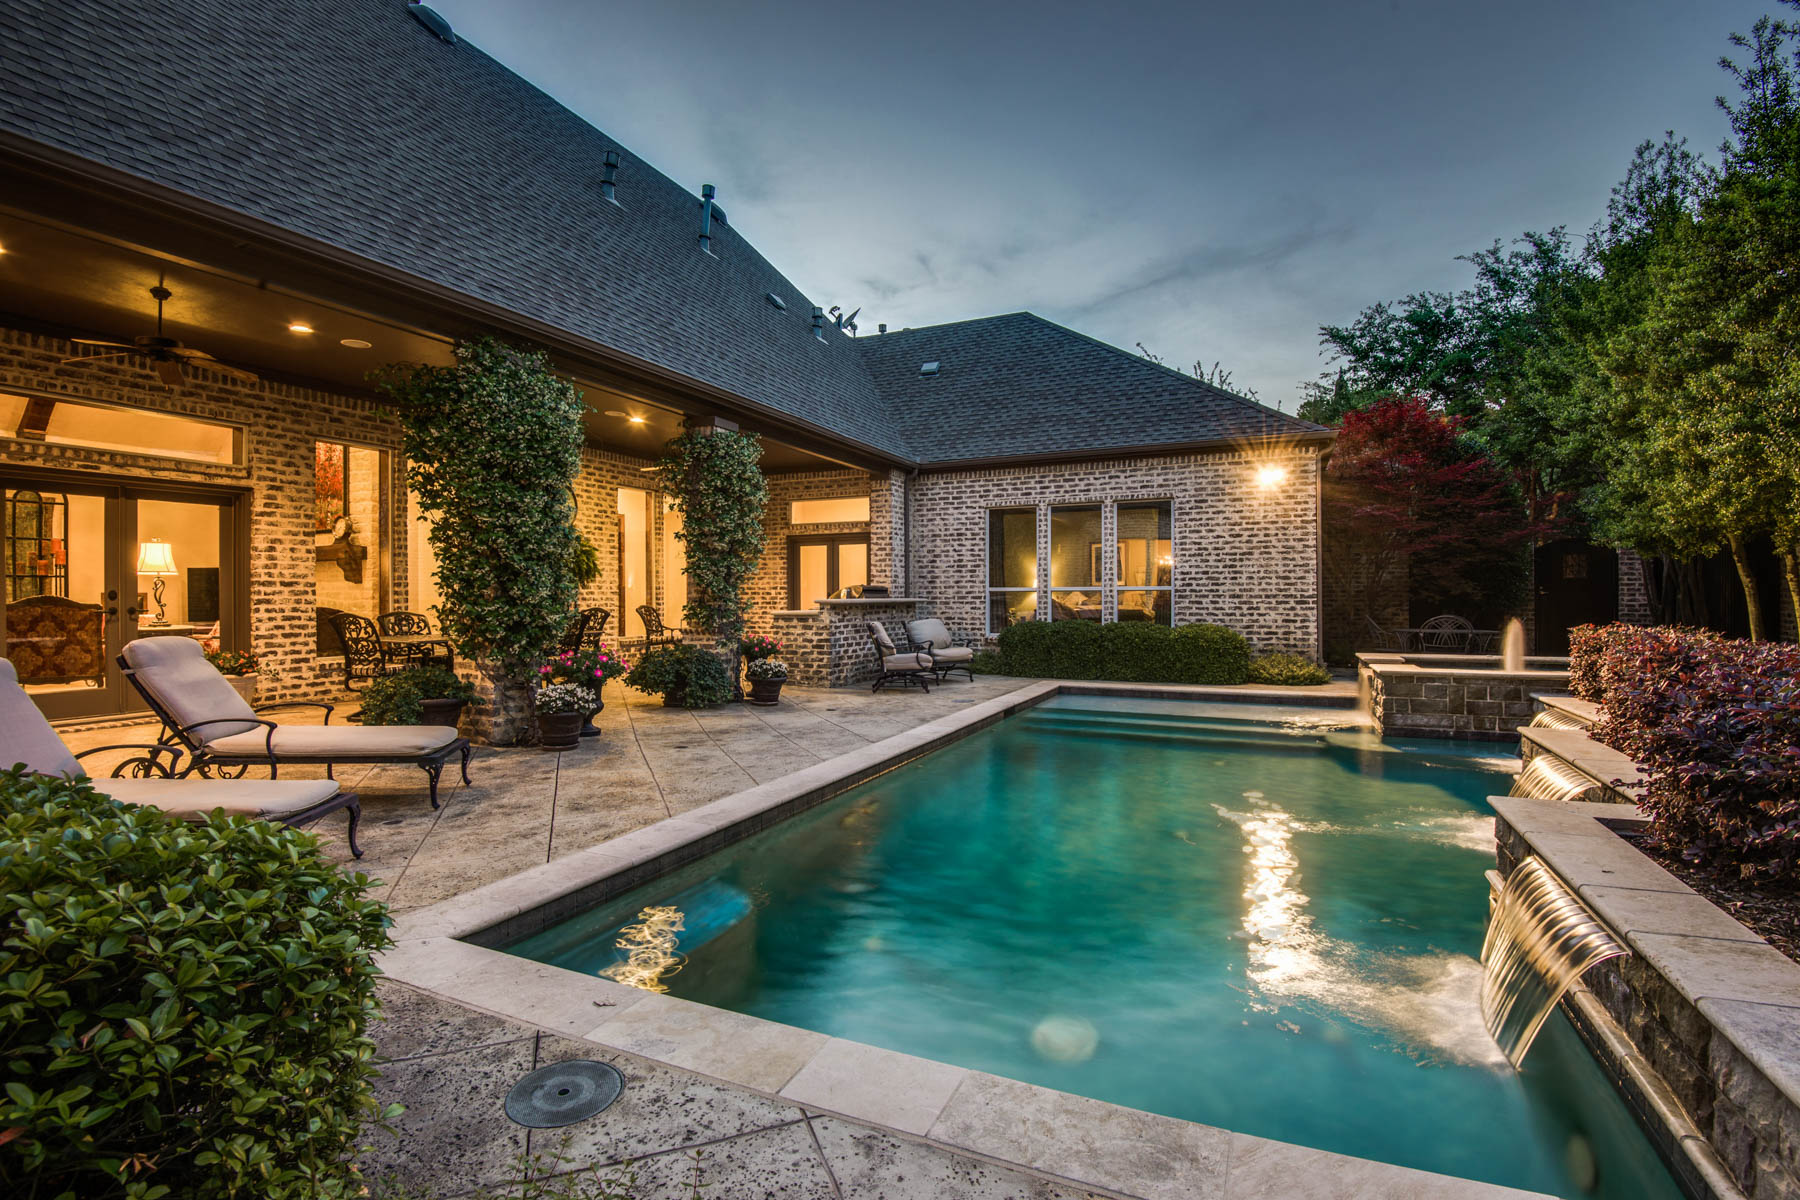 Single Family Home for Sale at Fall in Love with Your Outdoor Go to Spot! 5612 Fairfax Dr Frisco, Texas 75034 United States